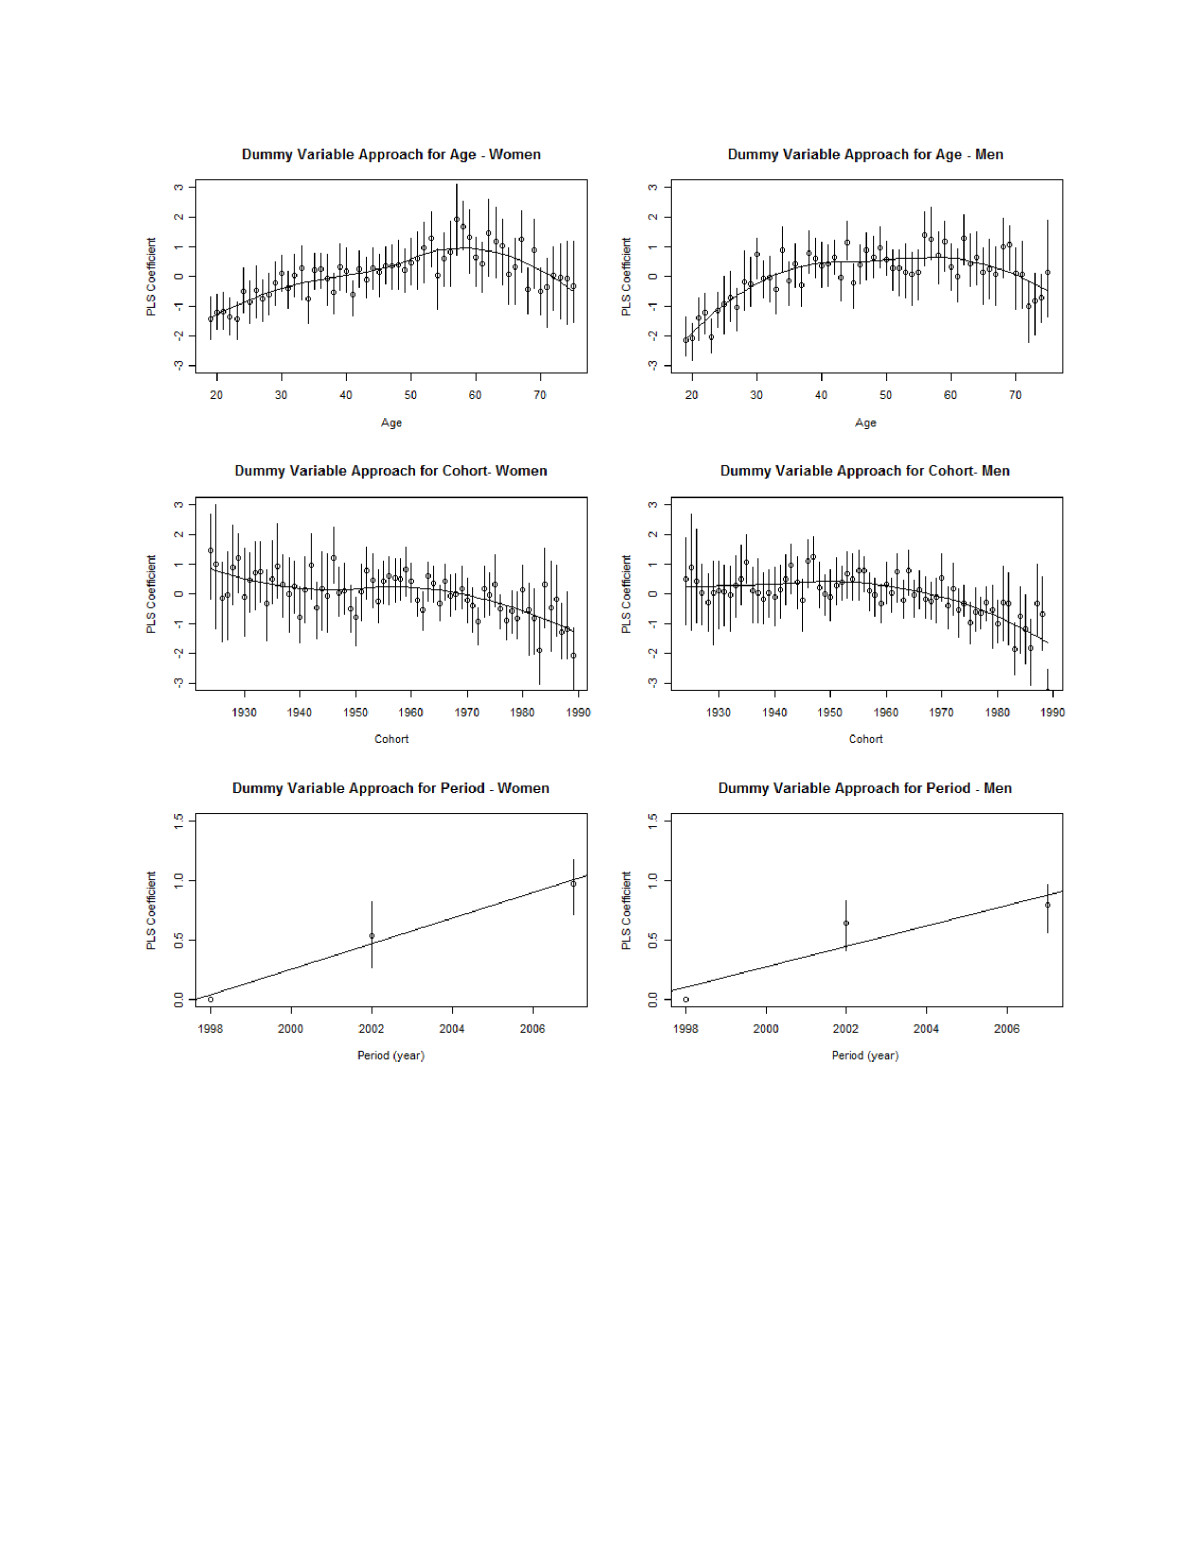 https://static-content.springer.com/image/art%3A10.1186%2F1471-2458-13-889/MediaObjects/12889_2013_Article_5900_Fig1_HTML.jpg